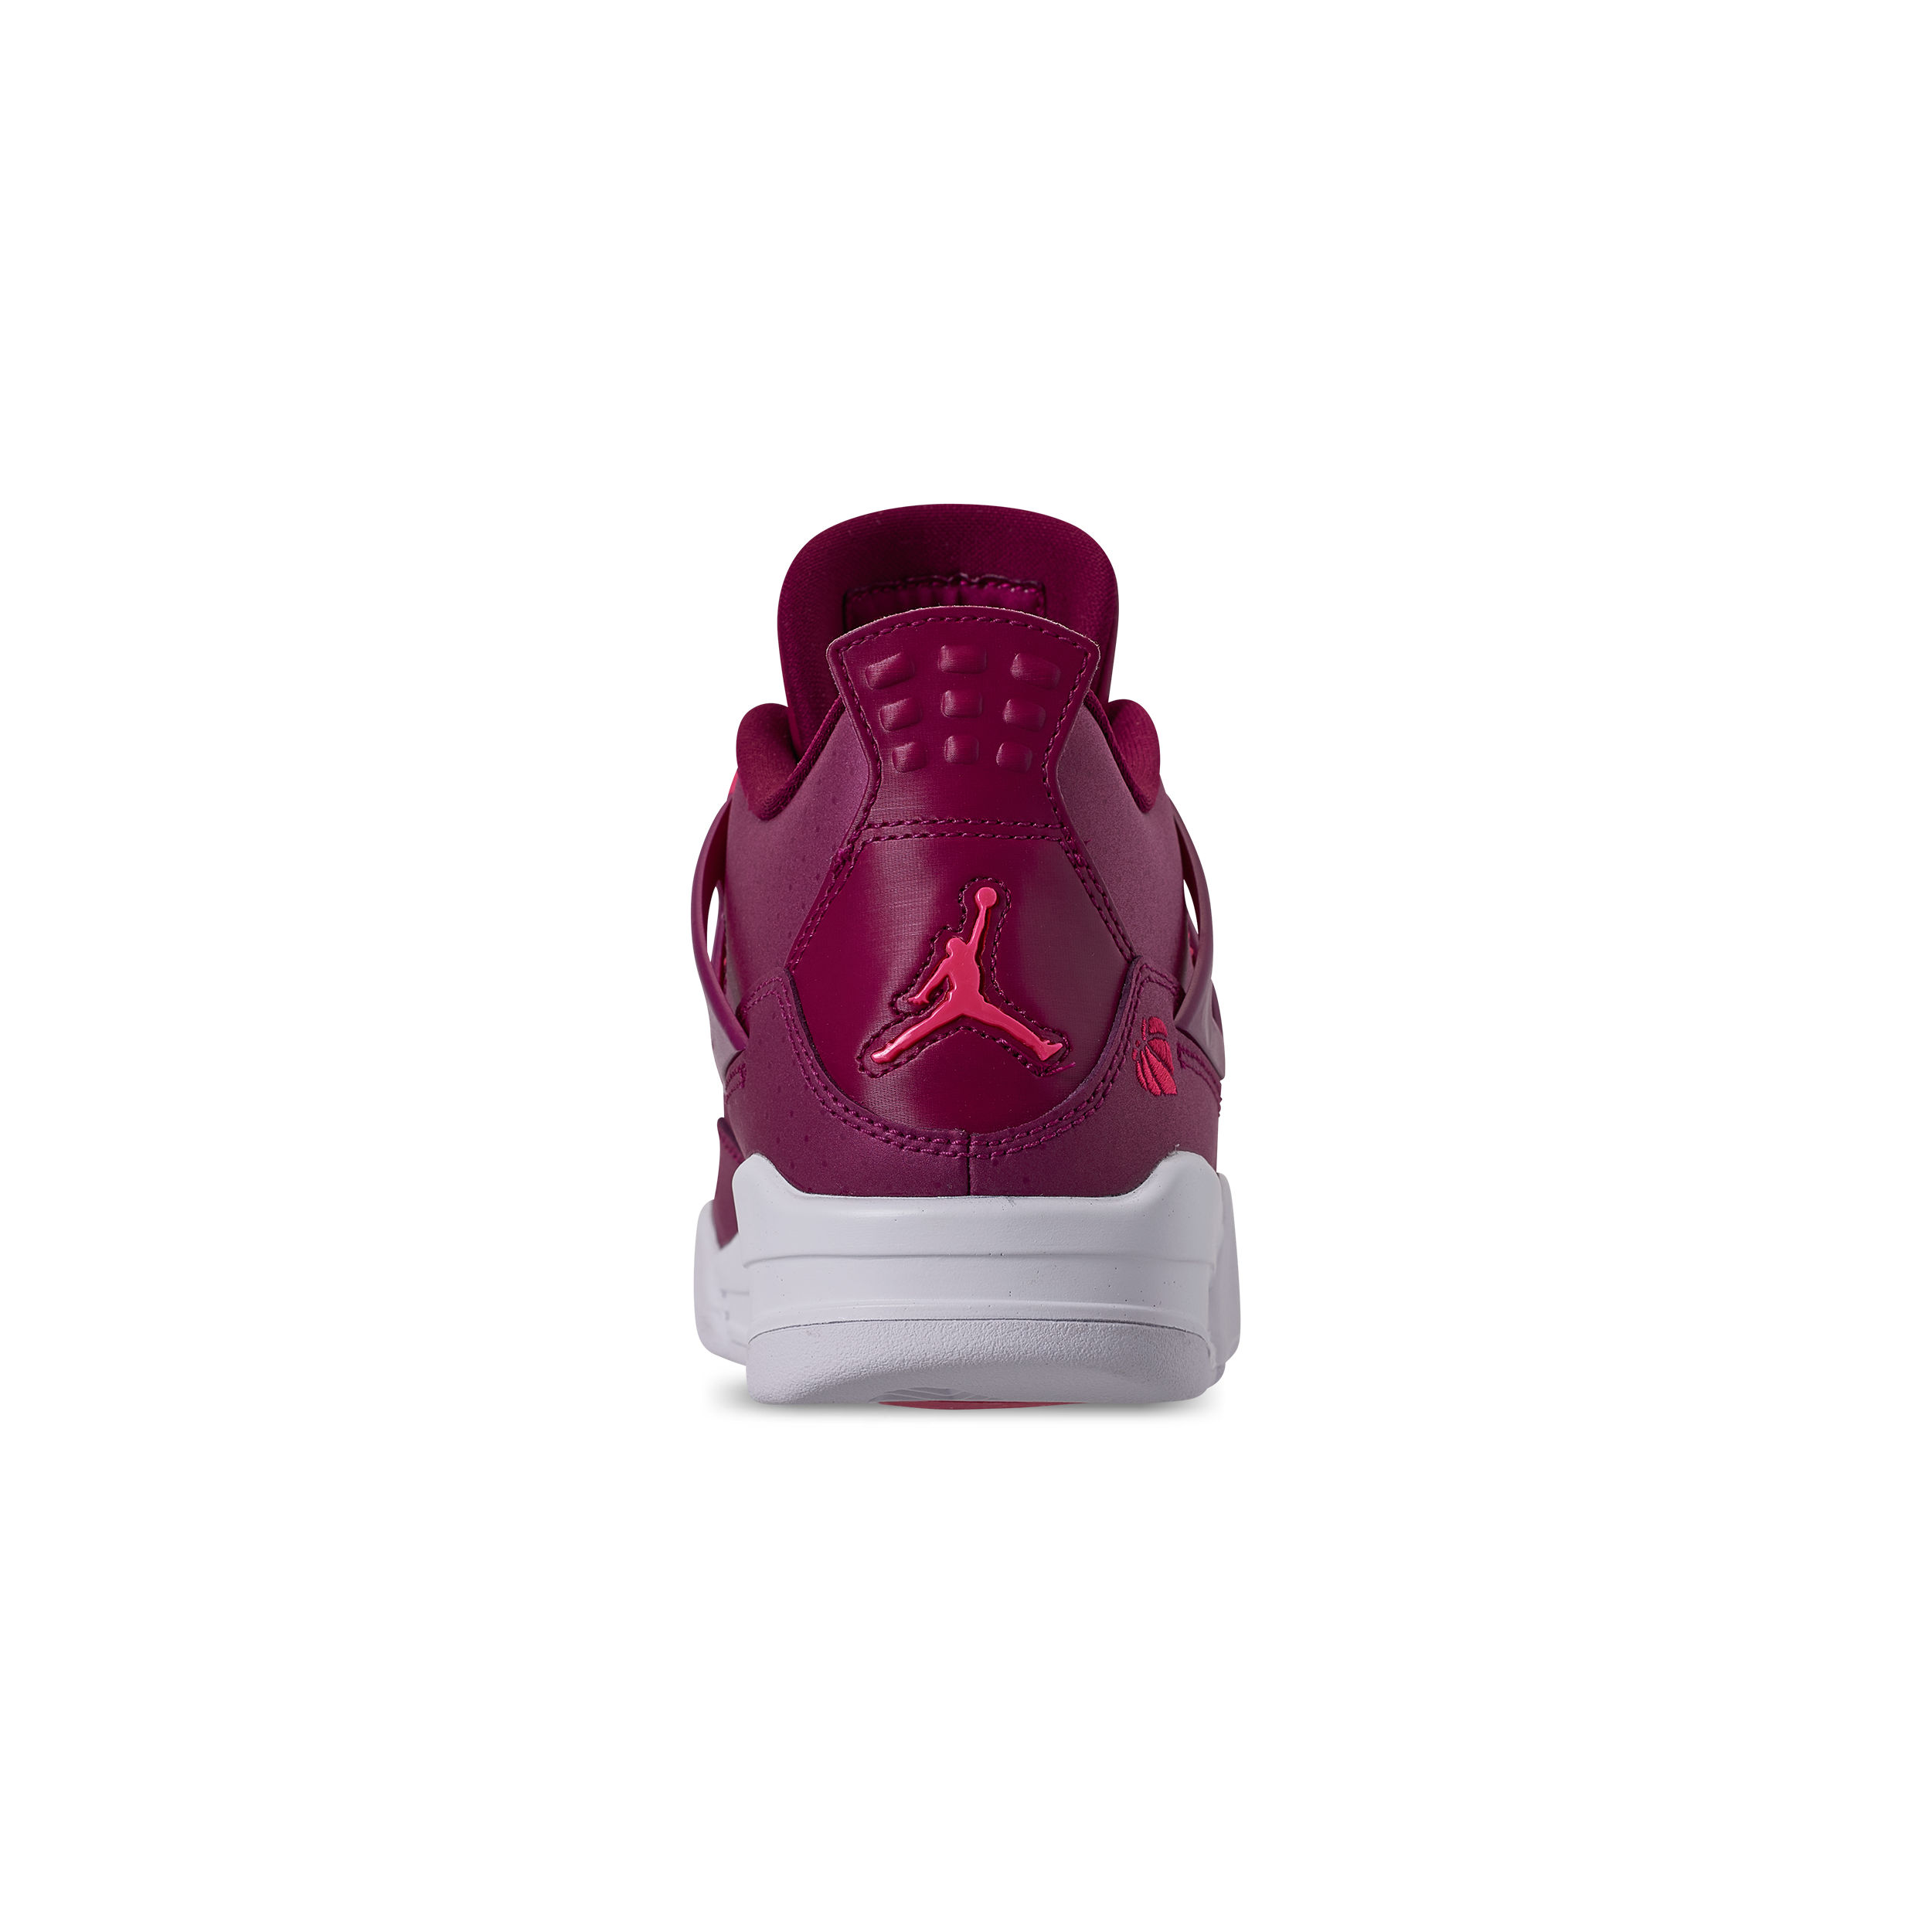 8ea685a89b40 AIR JORDAN RETRO 4 GS TRUE BERRY RUSH PINK-WHITE 5 - WearTesters